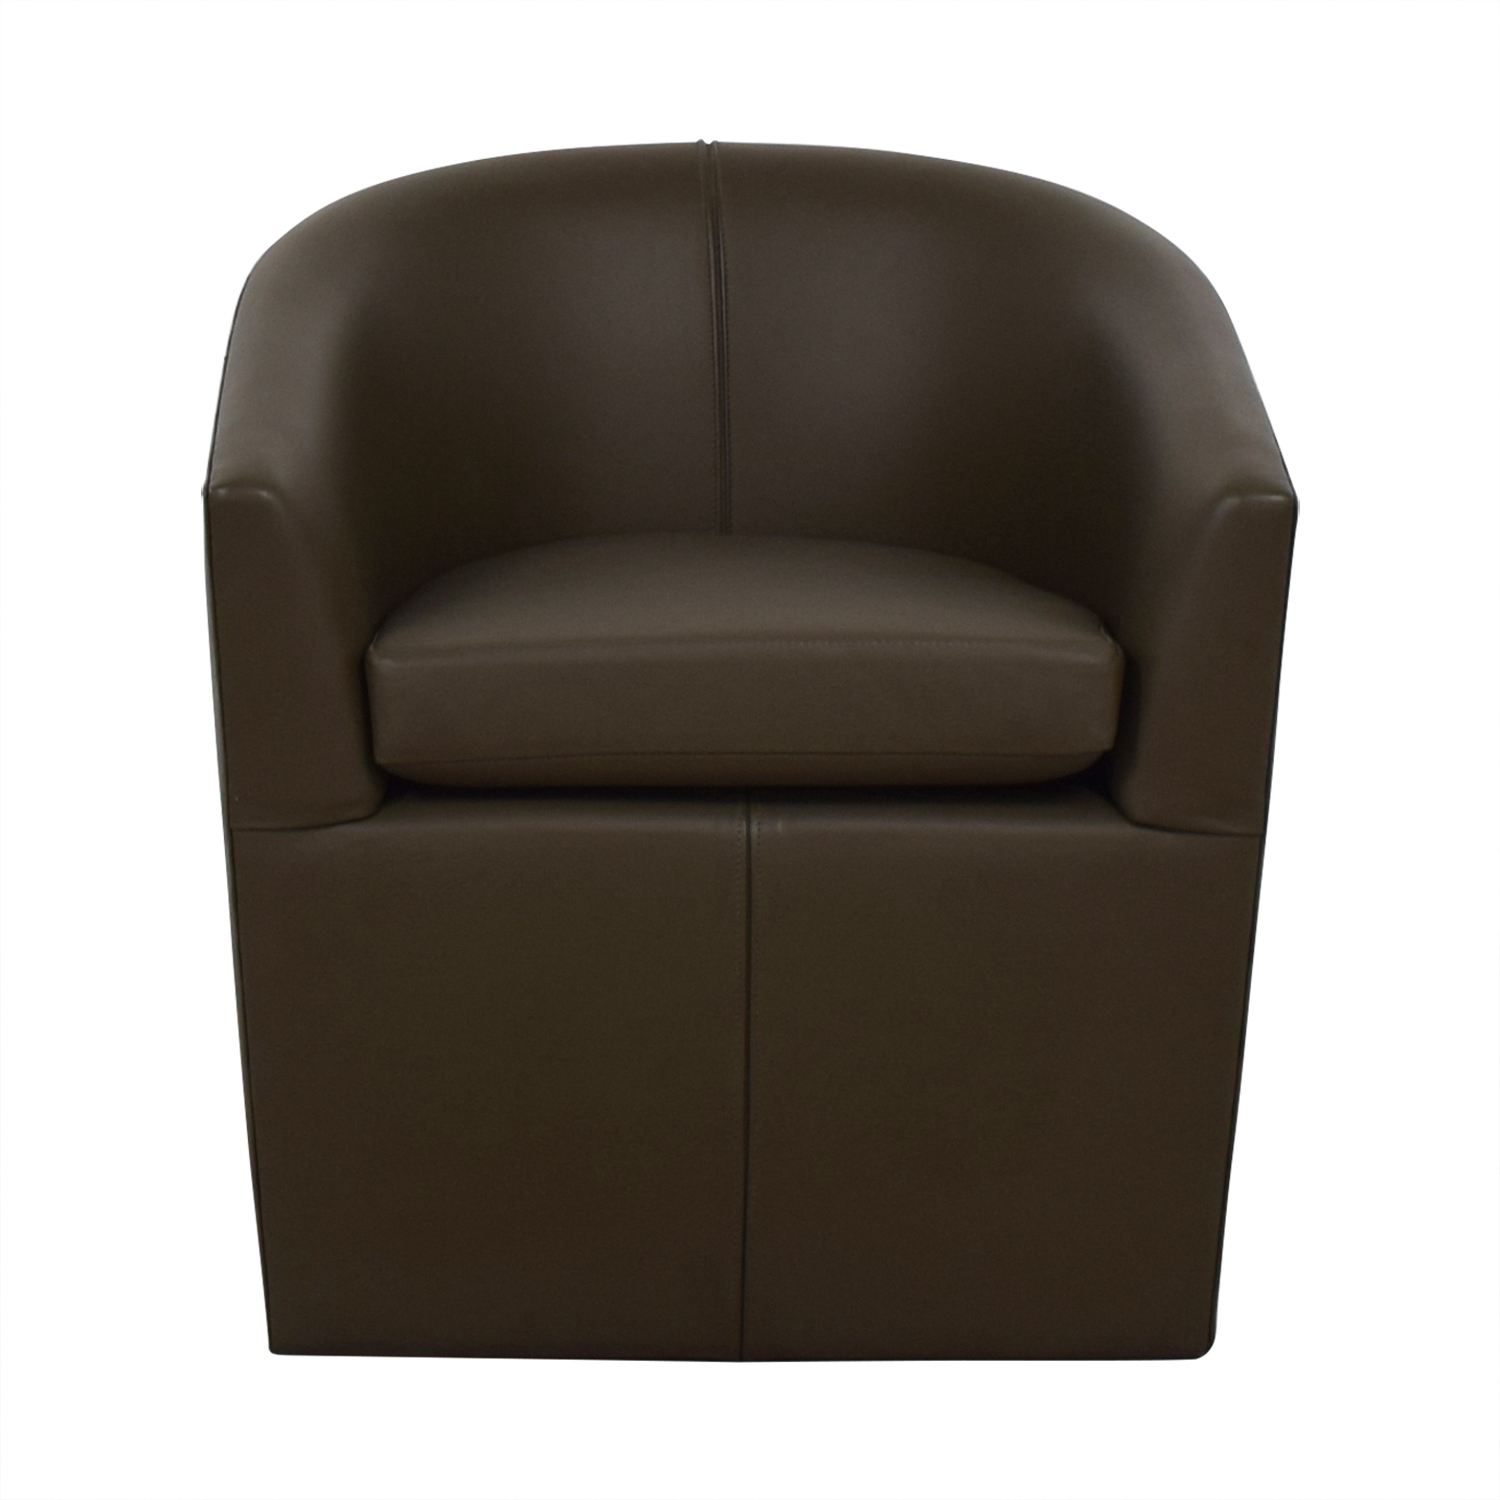 shop Furniture Masters Furniture Masters Club Accent Chair online